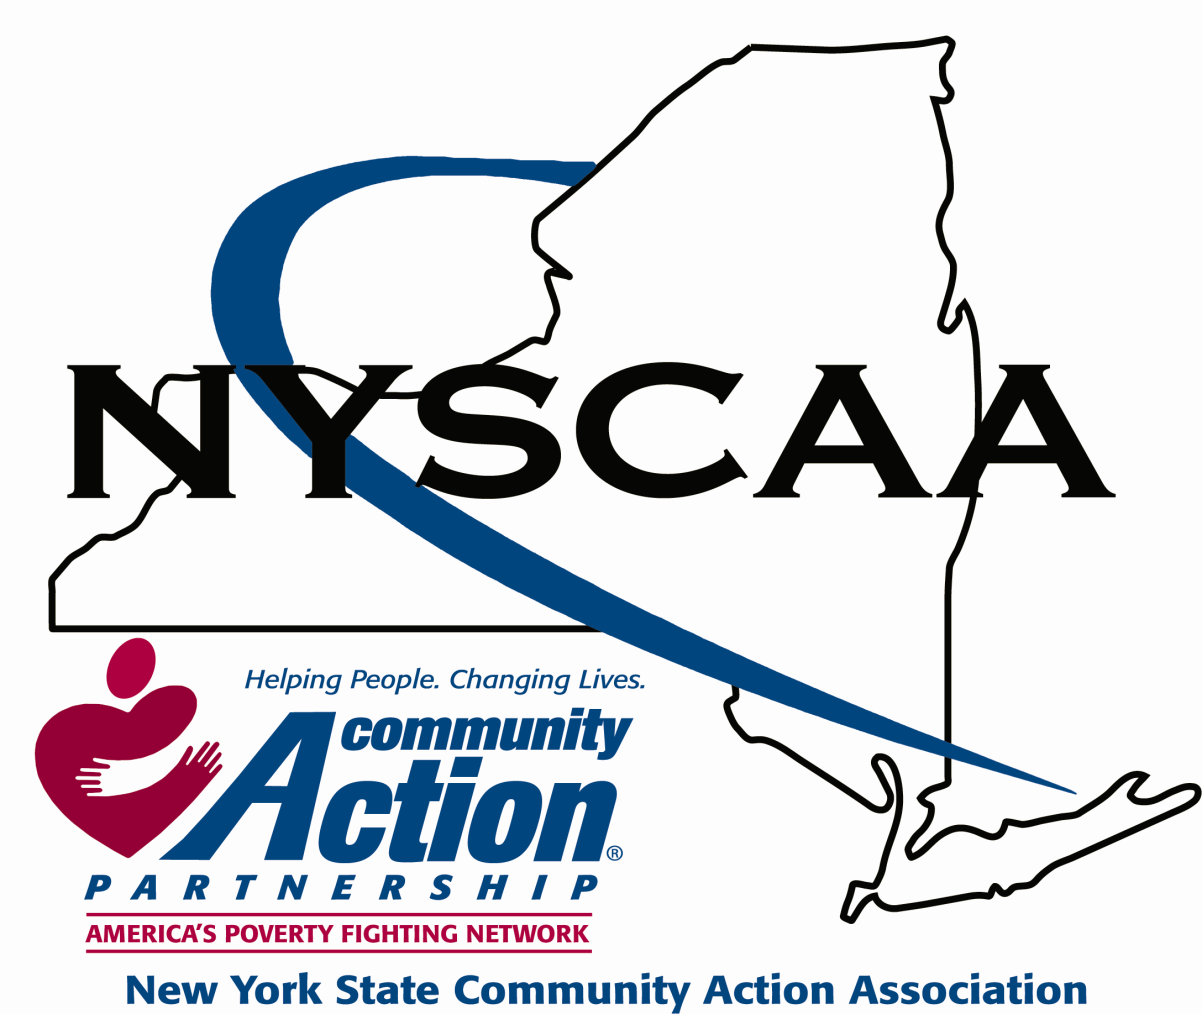 Karla Digirolamo, CEO, NYSCAA Report Compilation by: Kim McMann, CSBG Training Coordinator, NYSCAA New York State Community Action